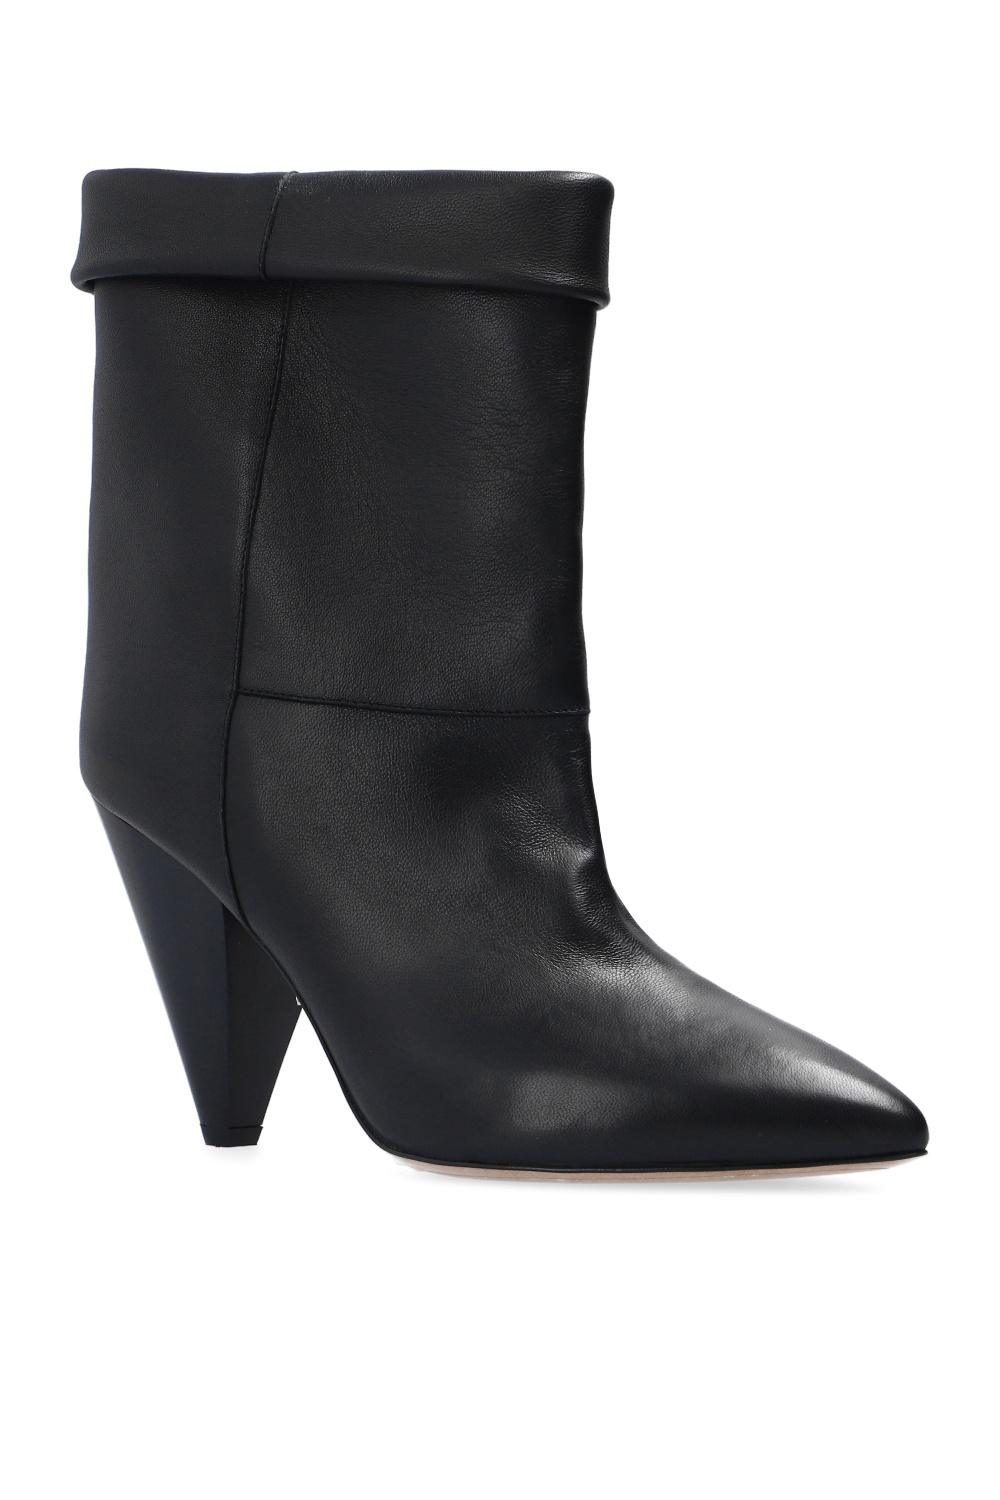 Isabel Marant 'Conic' heeled boots